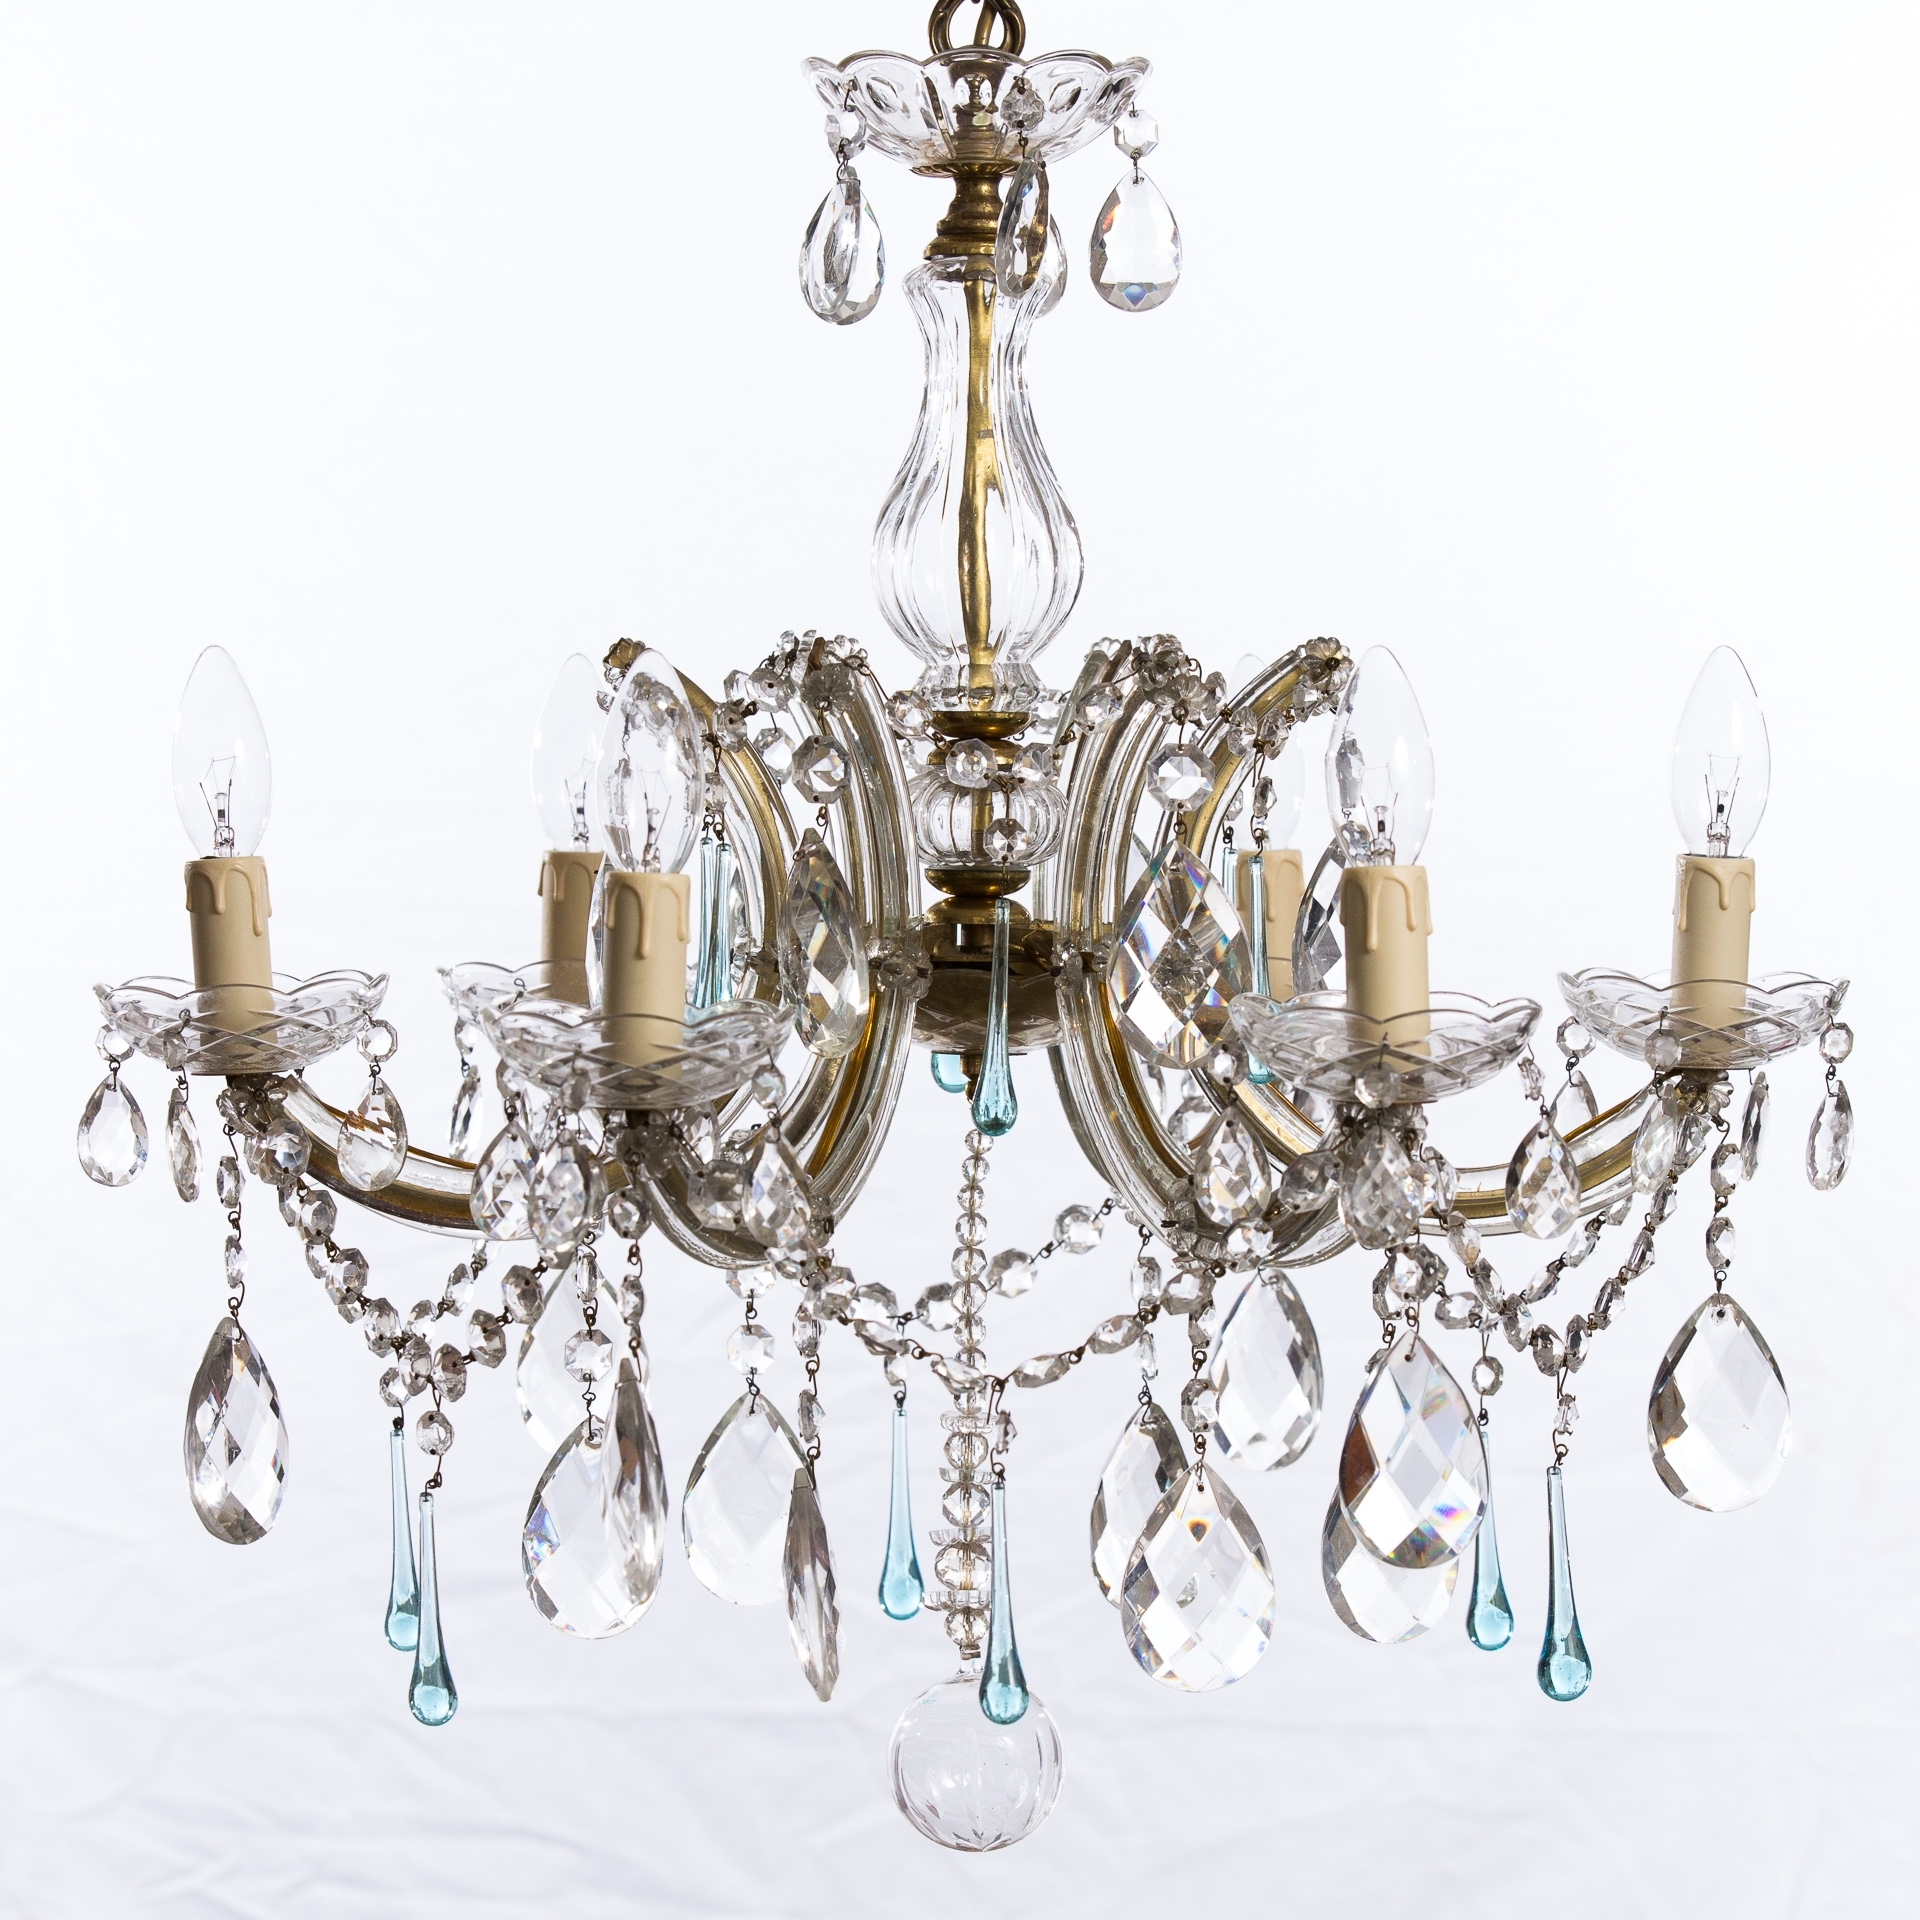 Fashionable Tips In Using Chandeliers For Bedrooms – Lighting And Chandeliers Intended For Chandeliers Vintage (View 9 of 20)